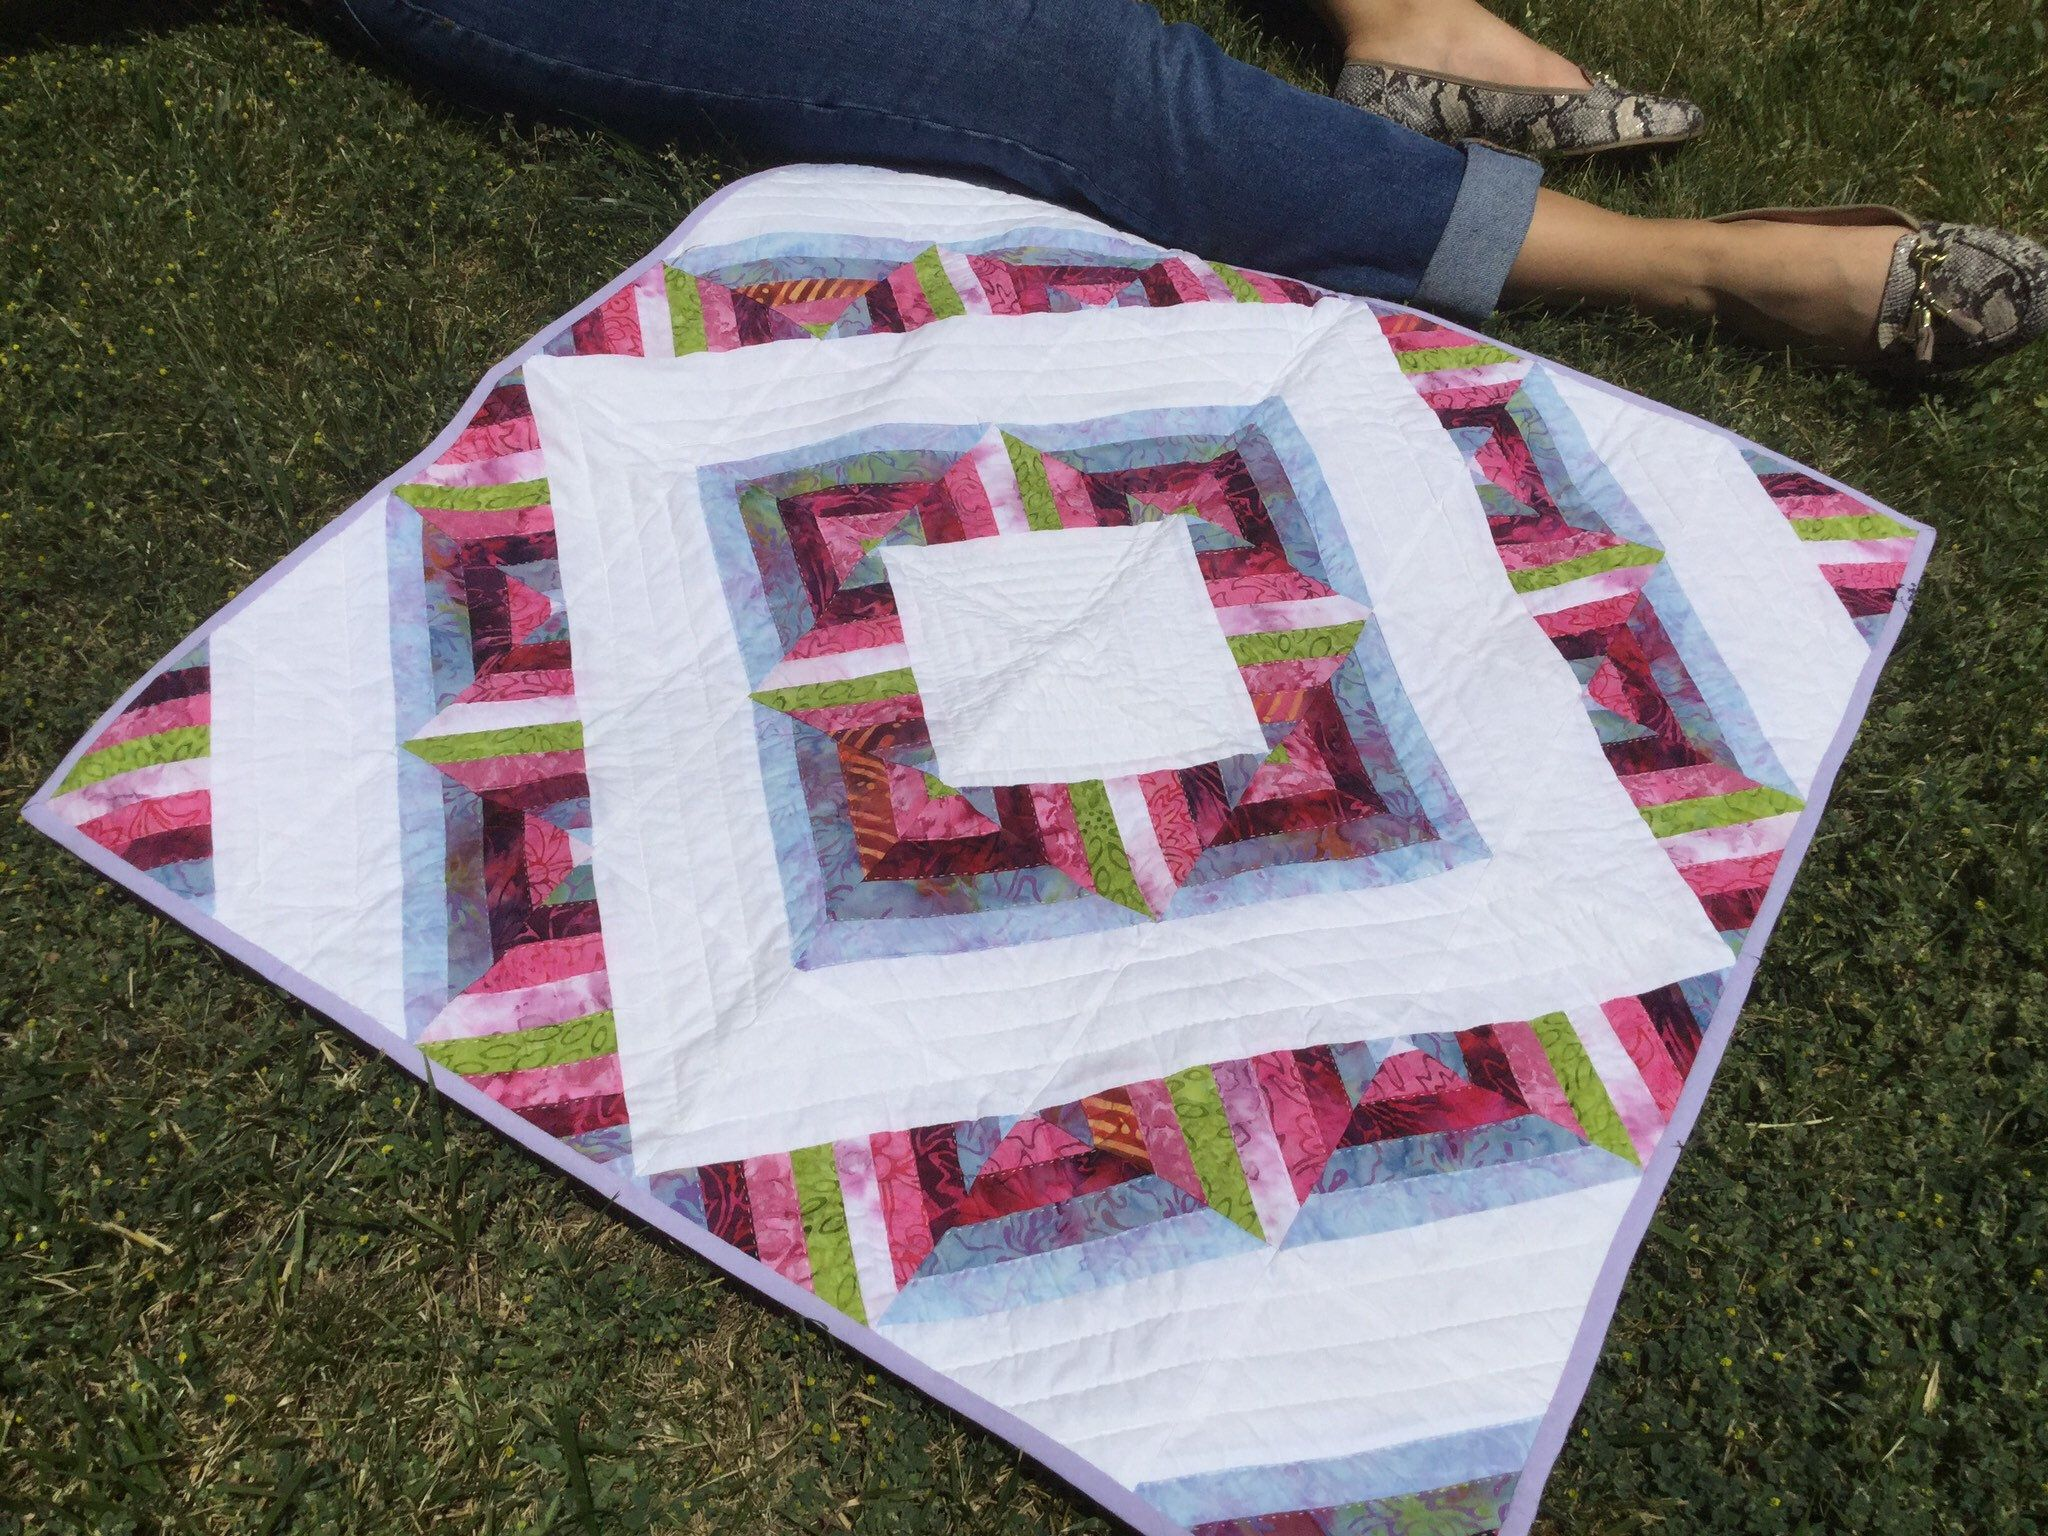 Colorful Table Decor, Tie Dye, Quilted Table Runner, Wedding Gift, Rainbow Tie Dye, Square, Patchwork